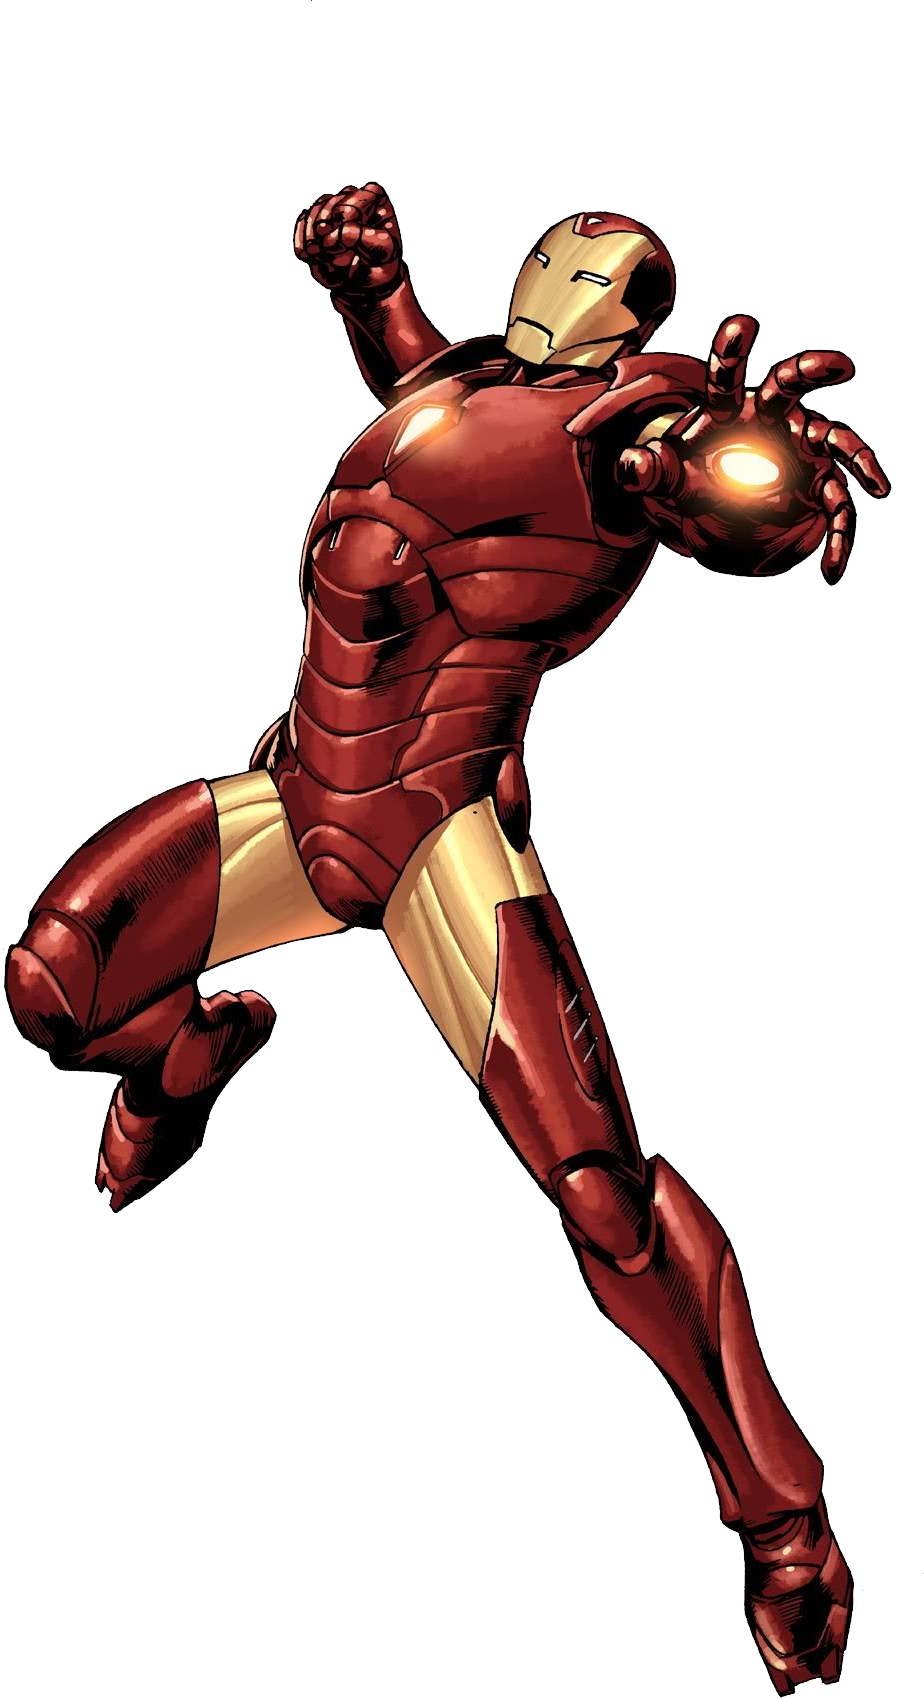 Transparent comic iron man. Ironman png image purepng